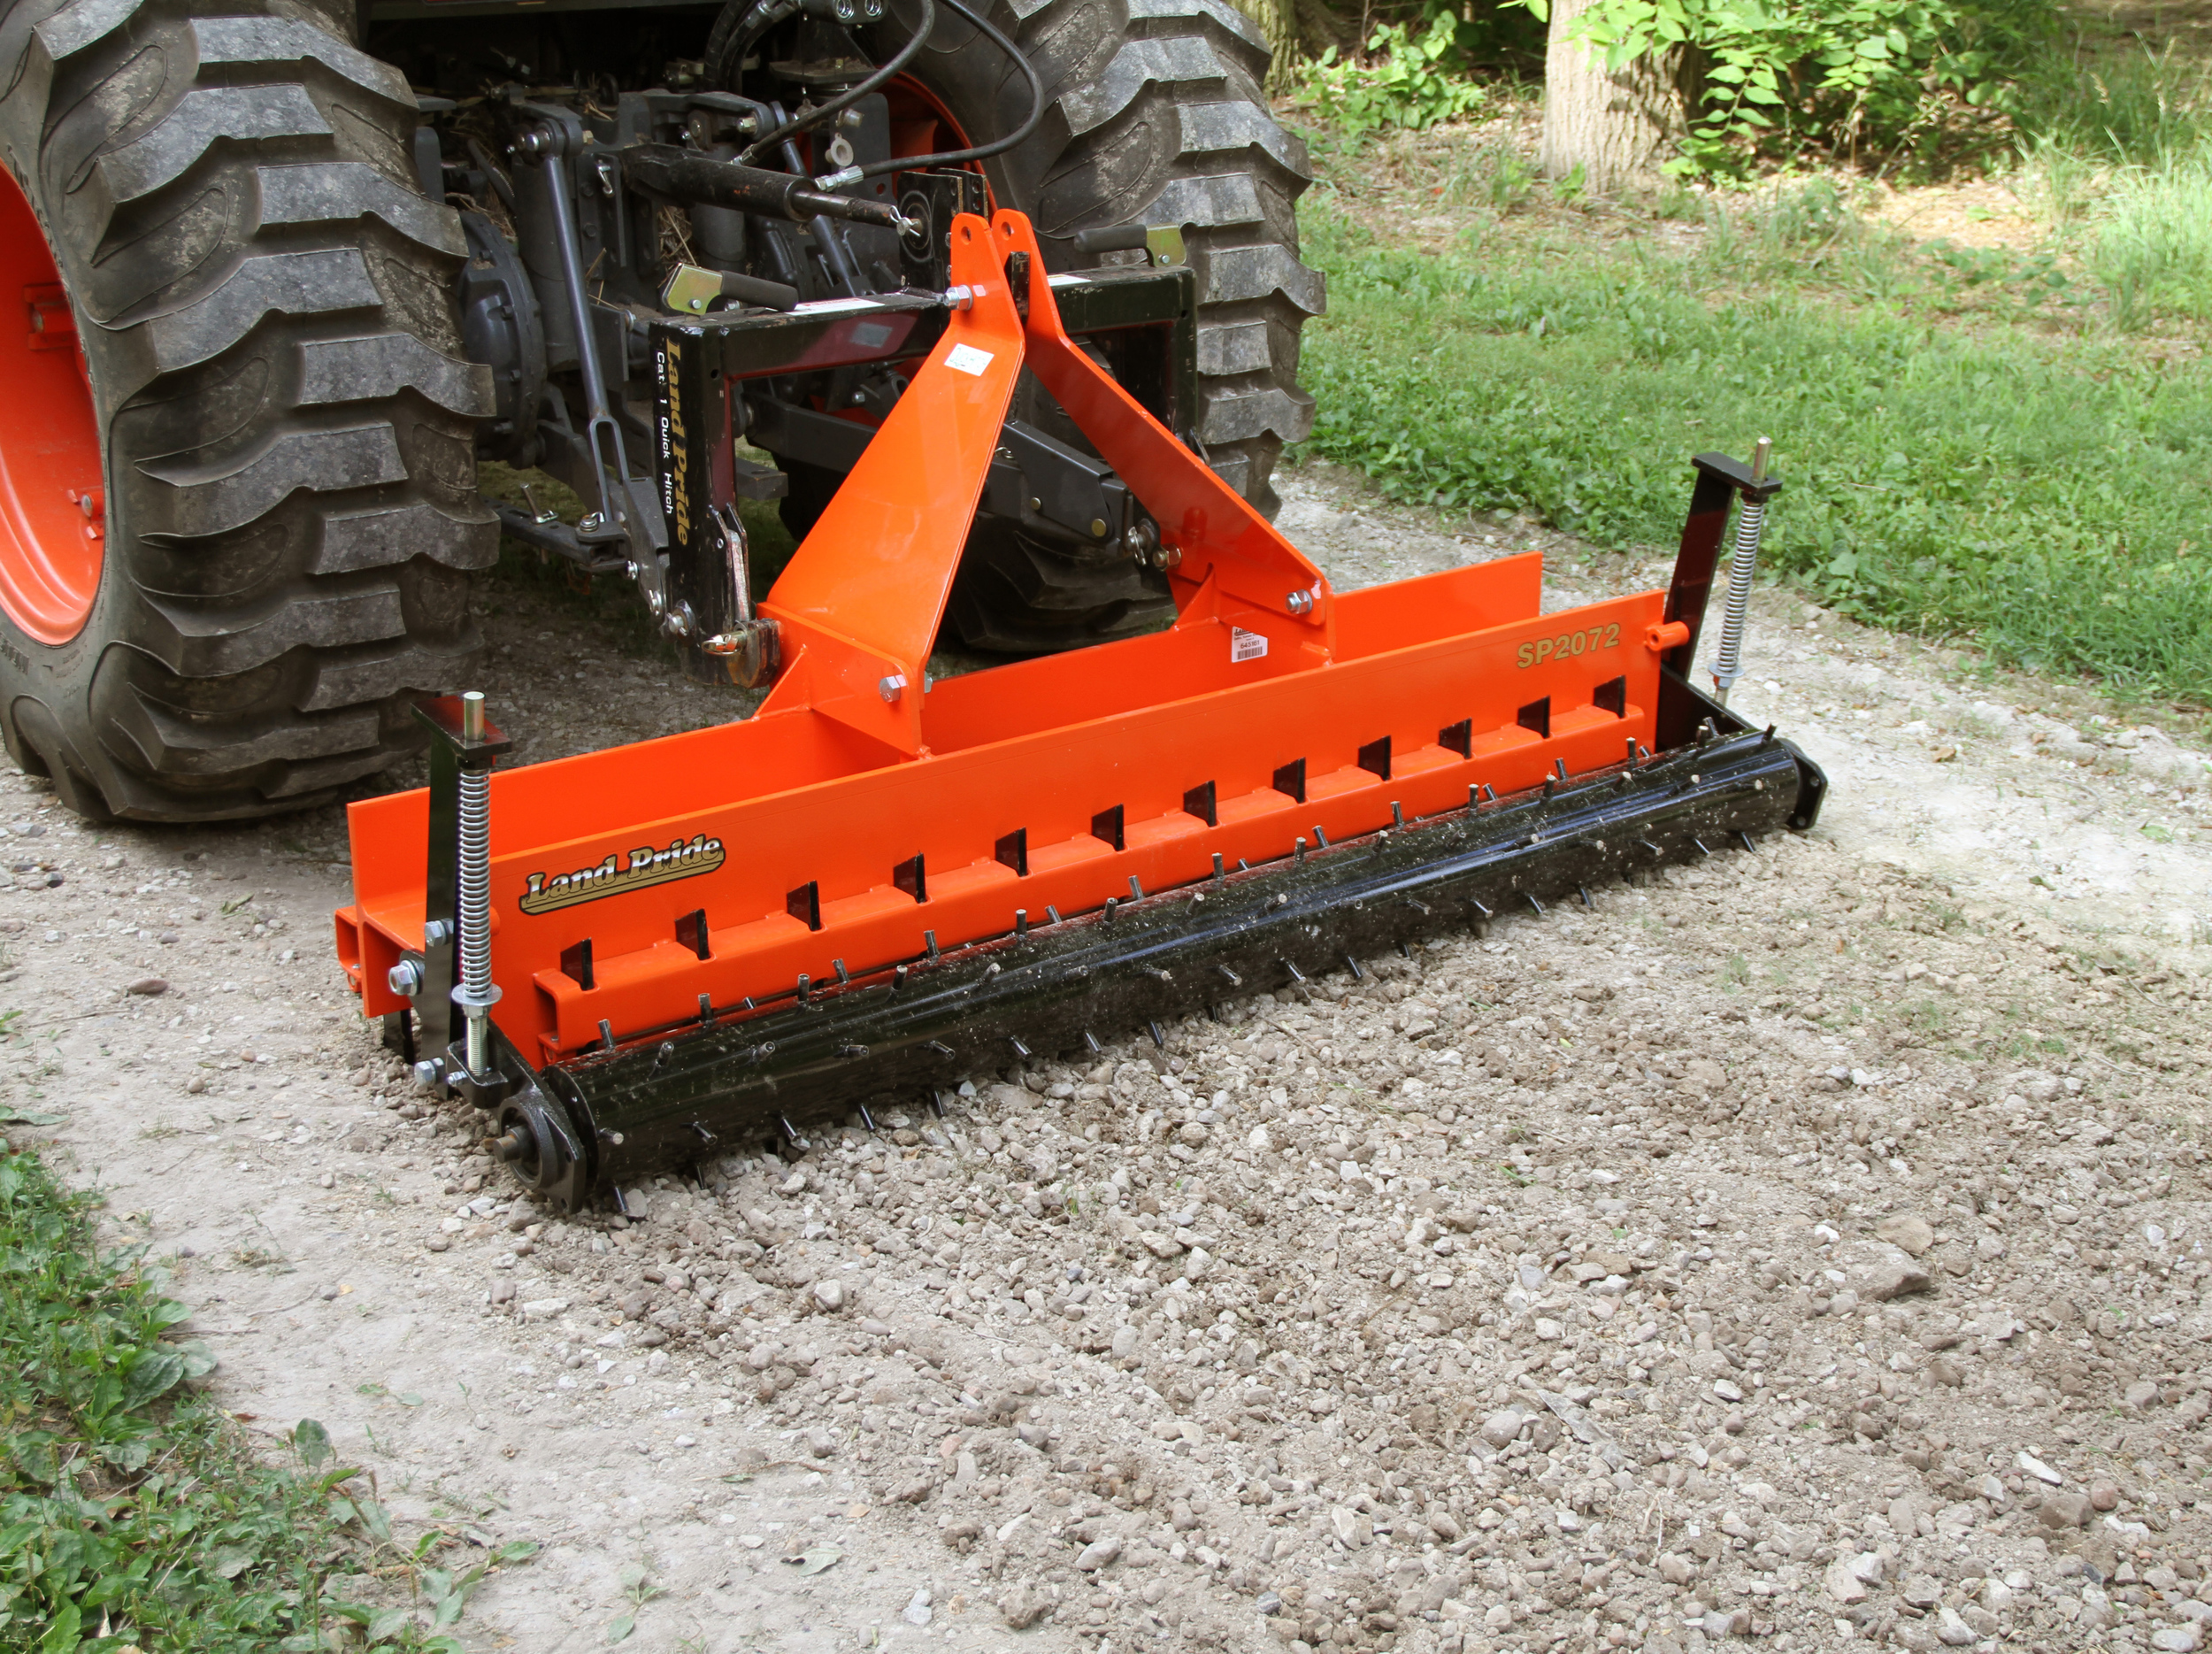 Land Pride Implements — Humphreys' Outdoor Power